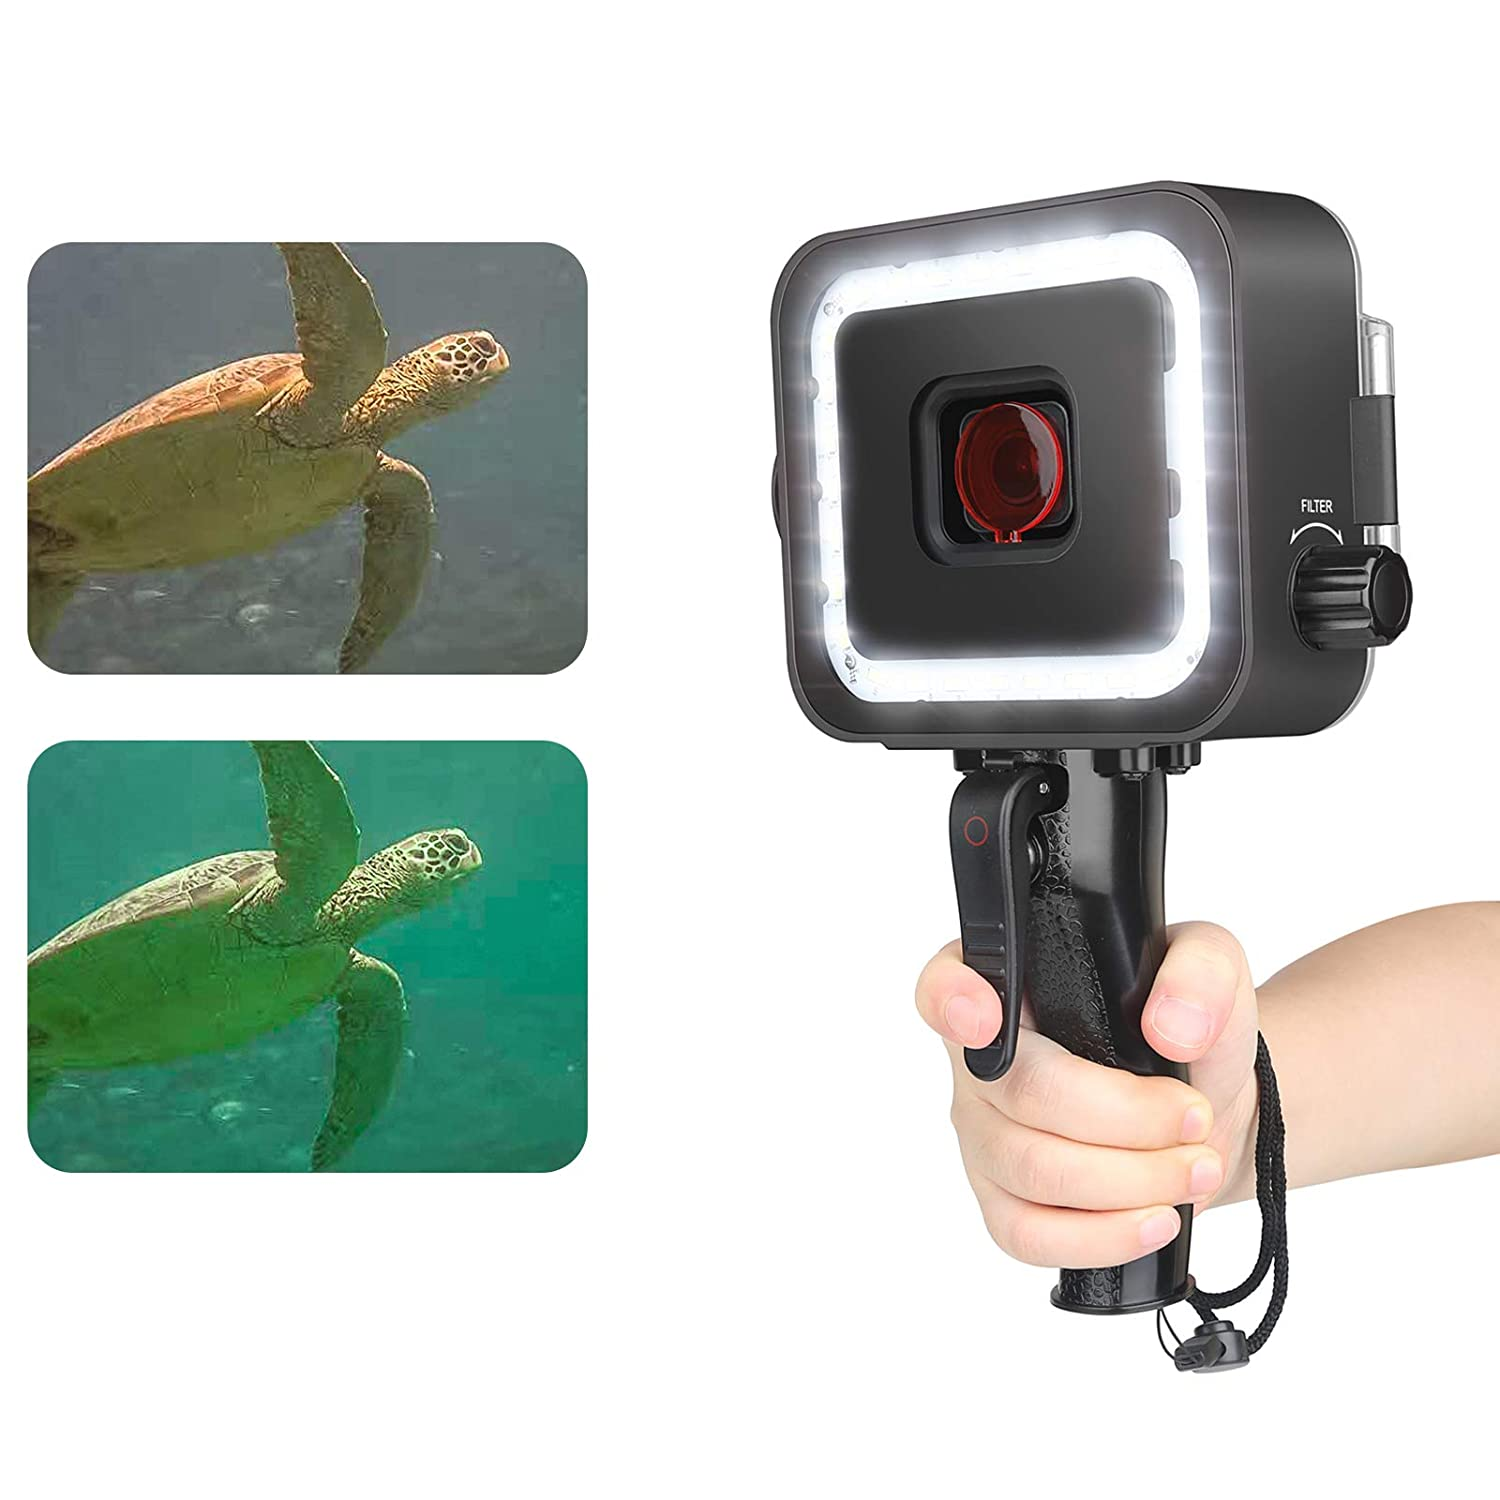 D/&F Scuba Diving Underwater Light 30M Waterproof Case LED Rechargeable Flashlight Camera Accessories with Red Filter and Shutter Trigger for GOPRO Hero 7 BLACK//6//5//HERO 2018